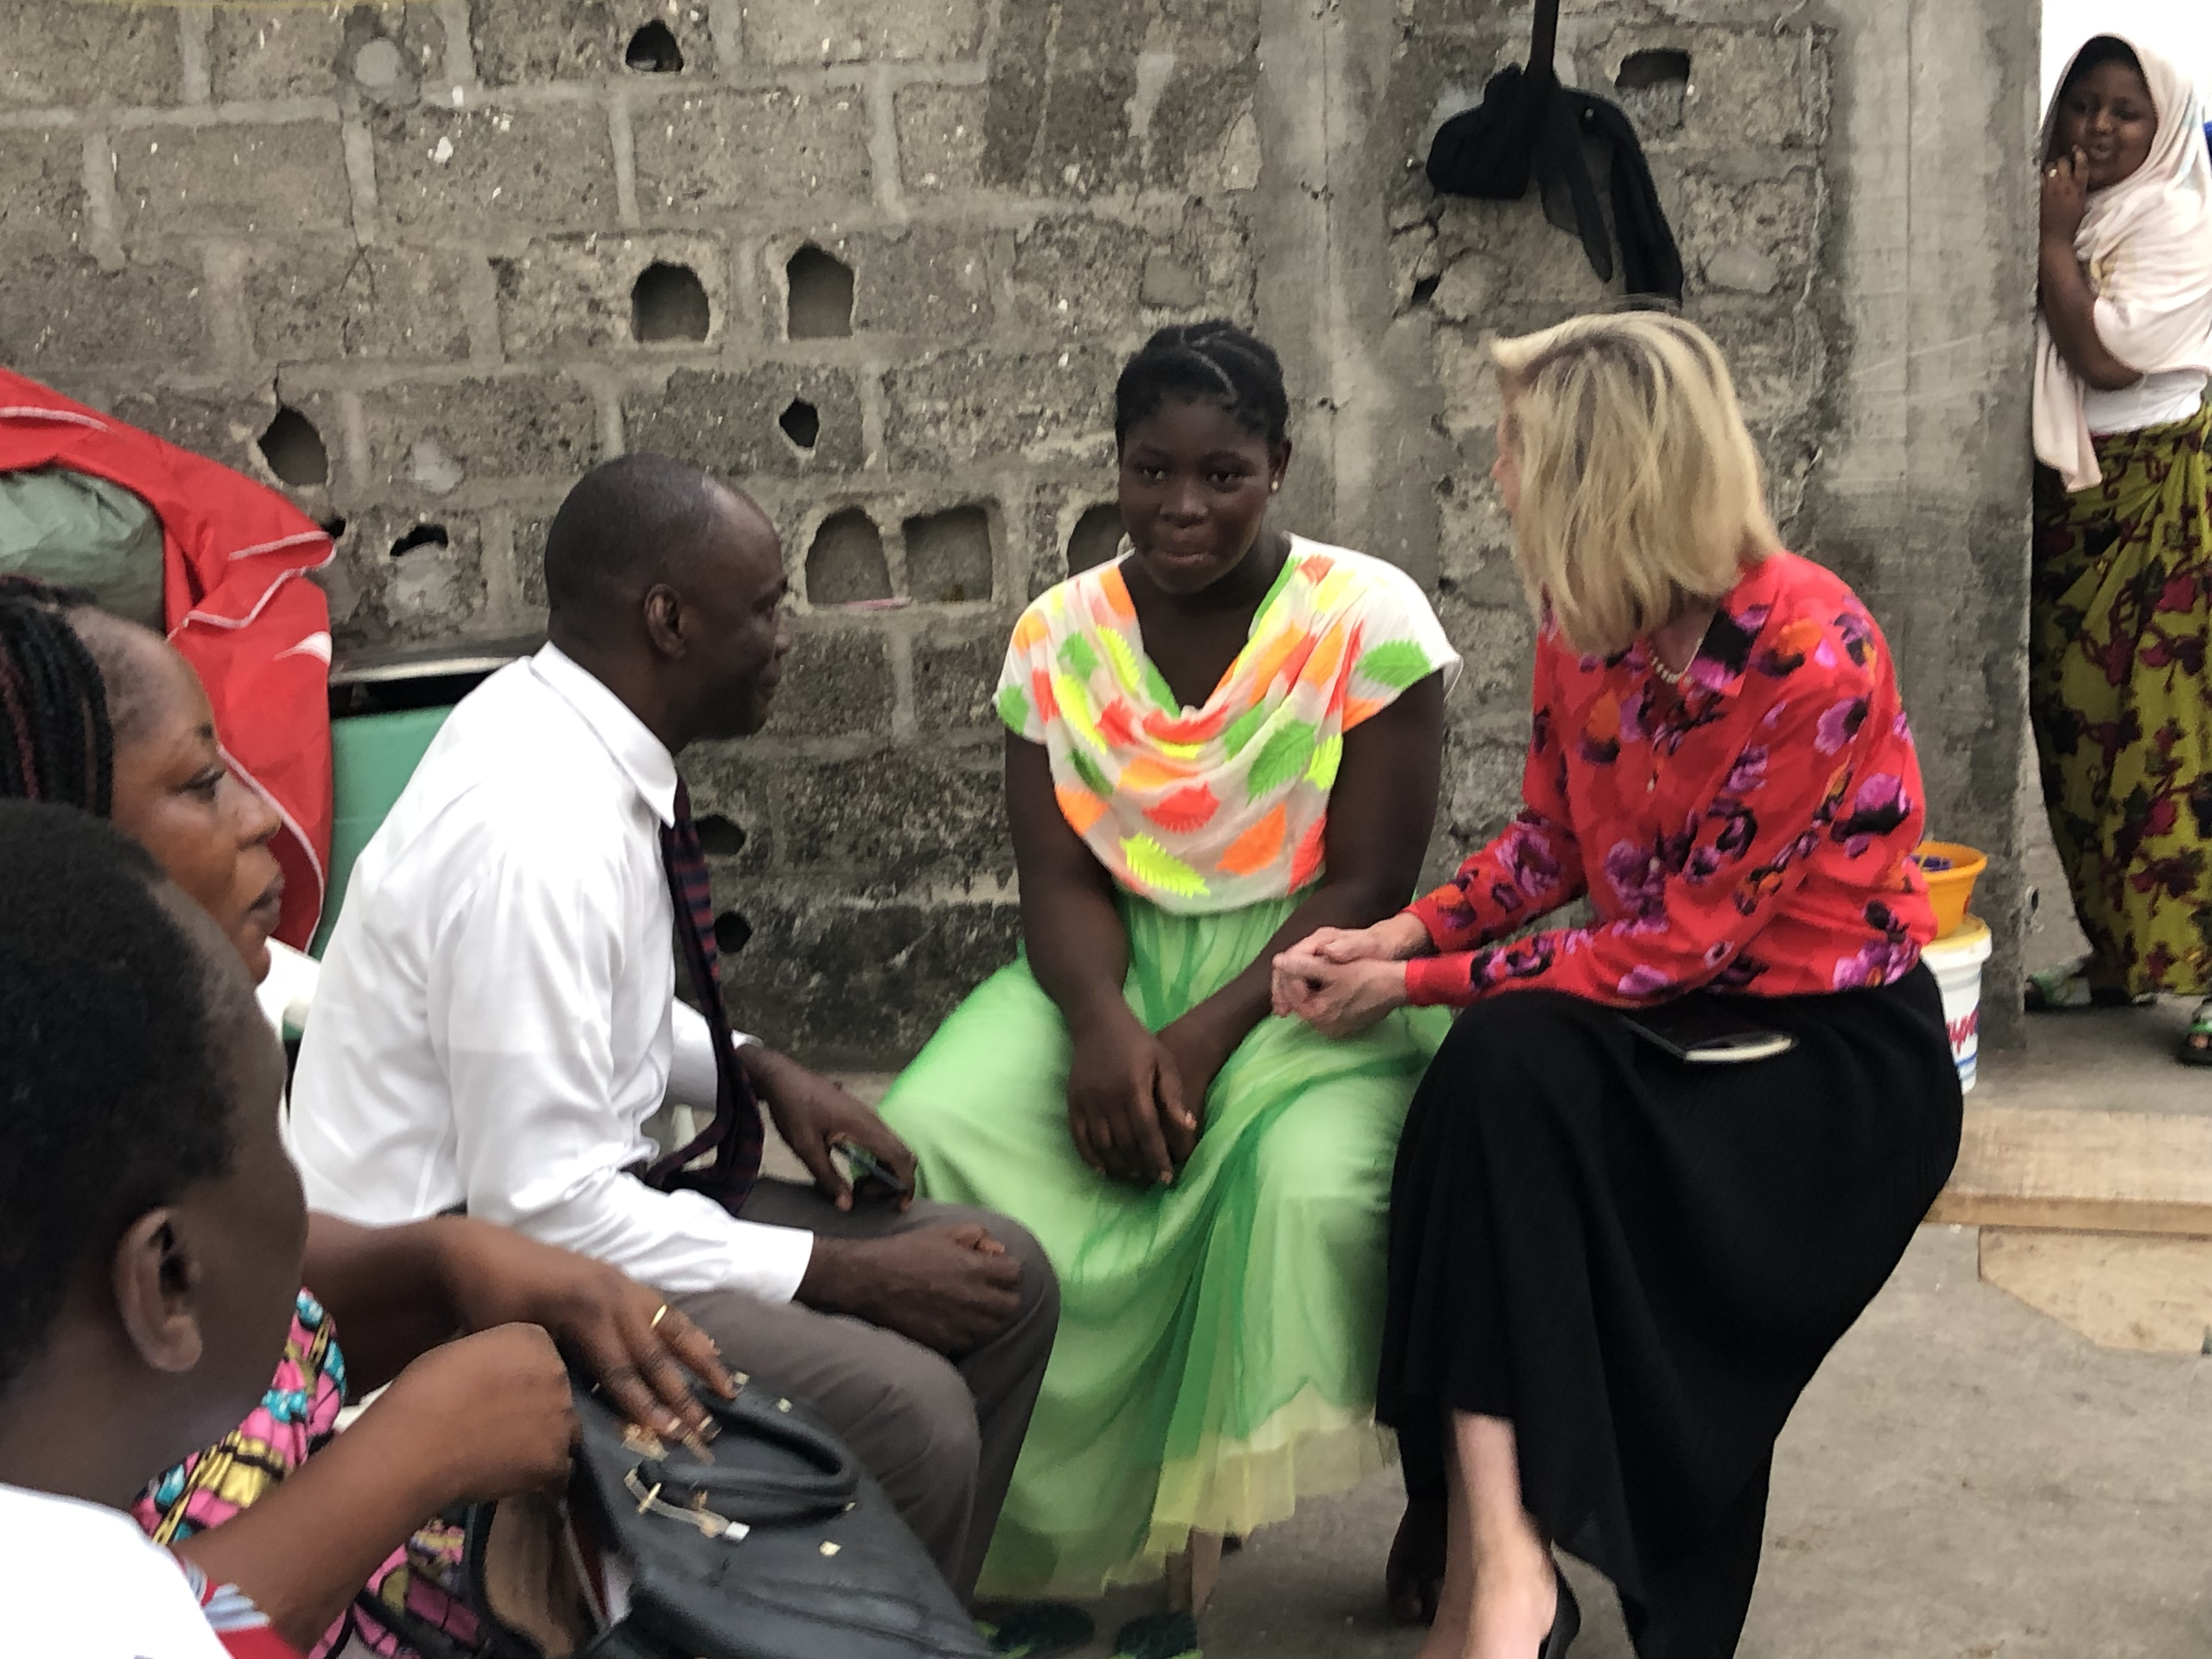 Sister Bonnie H. Cordon, Young Women general president, makes a home visit to 17-year-old Akpan Prisca, who was recently baptized, in Abidjan, Côte d'Ivoire, Friday, March 8, 2019.